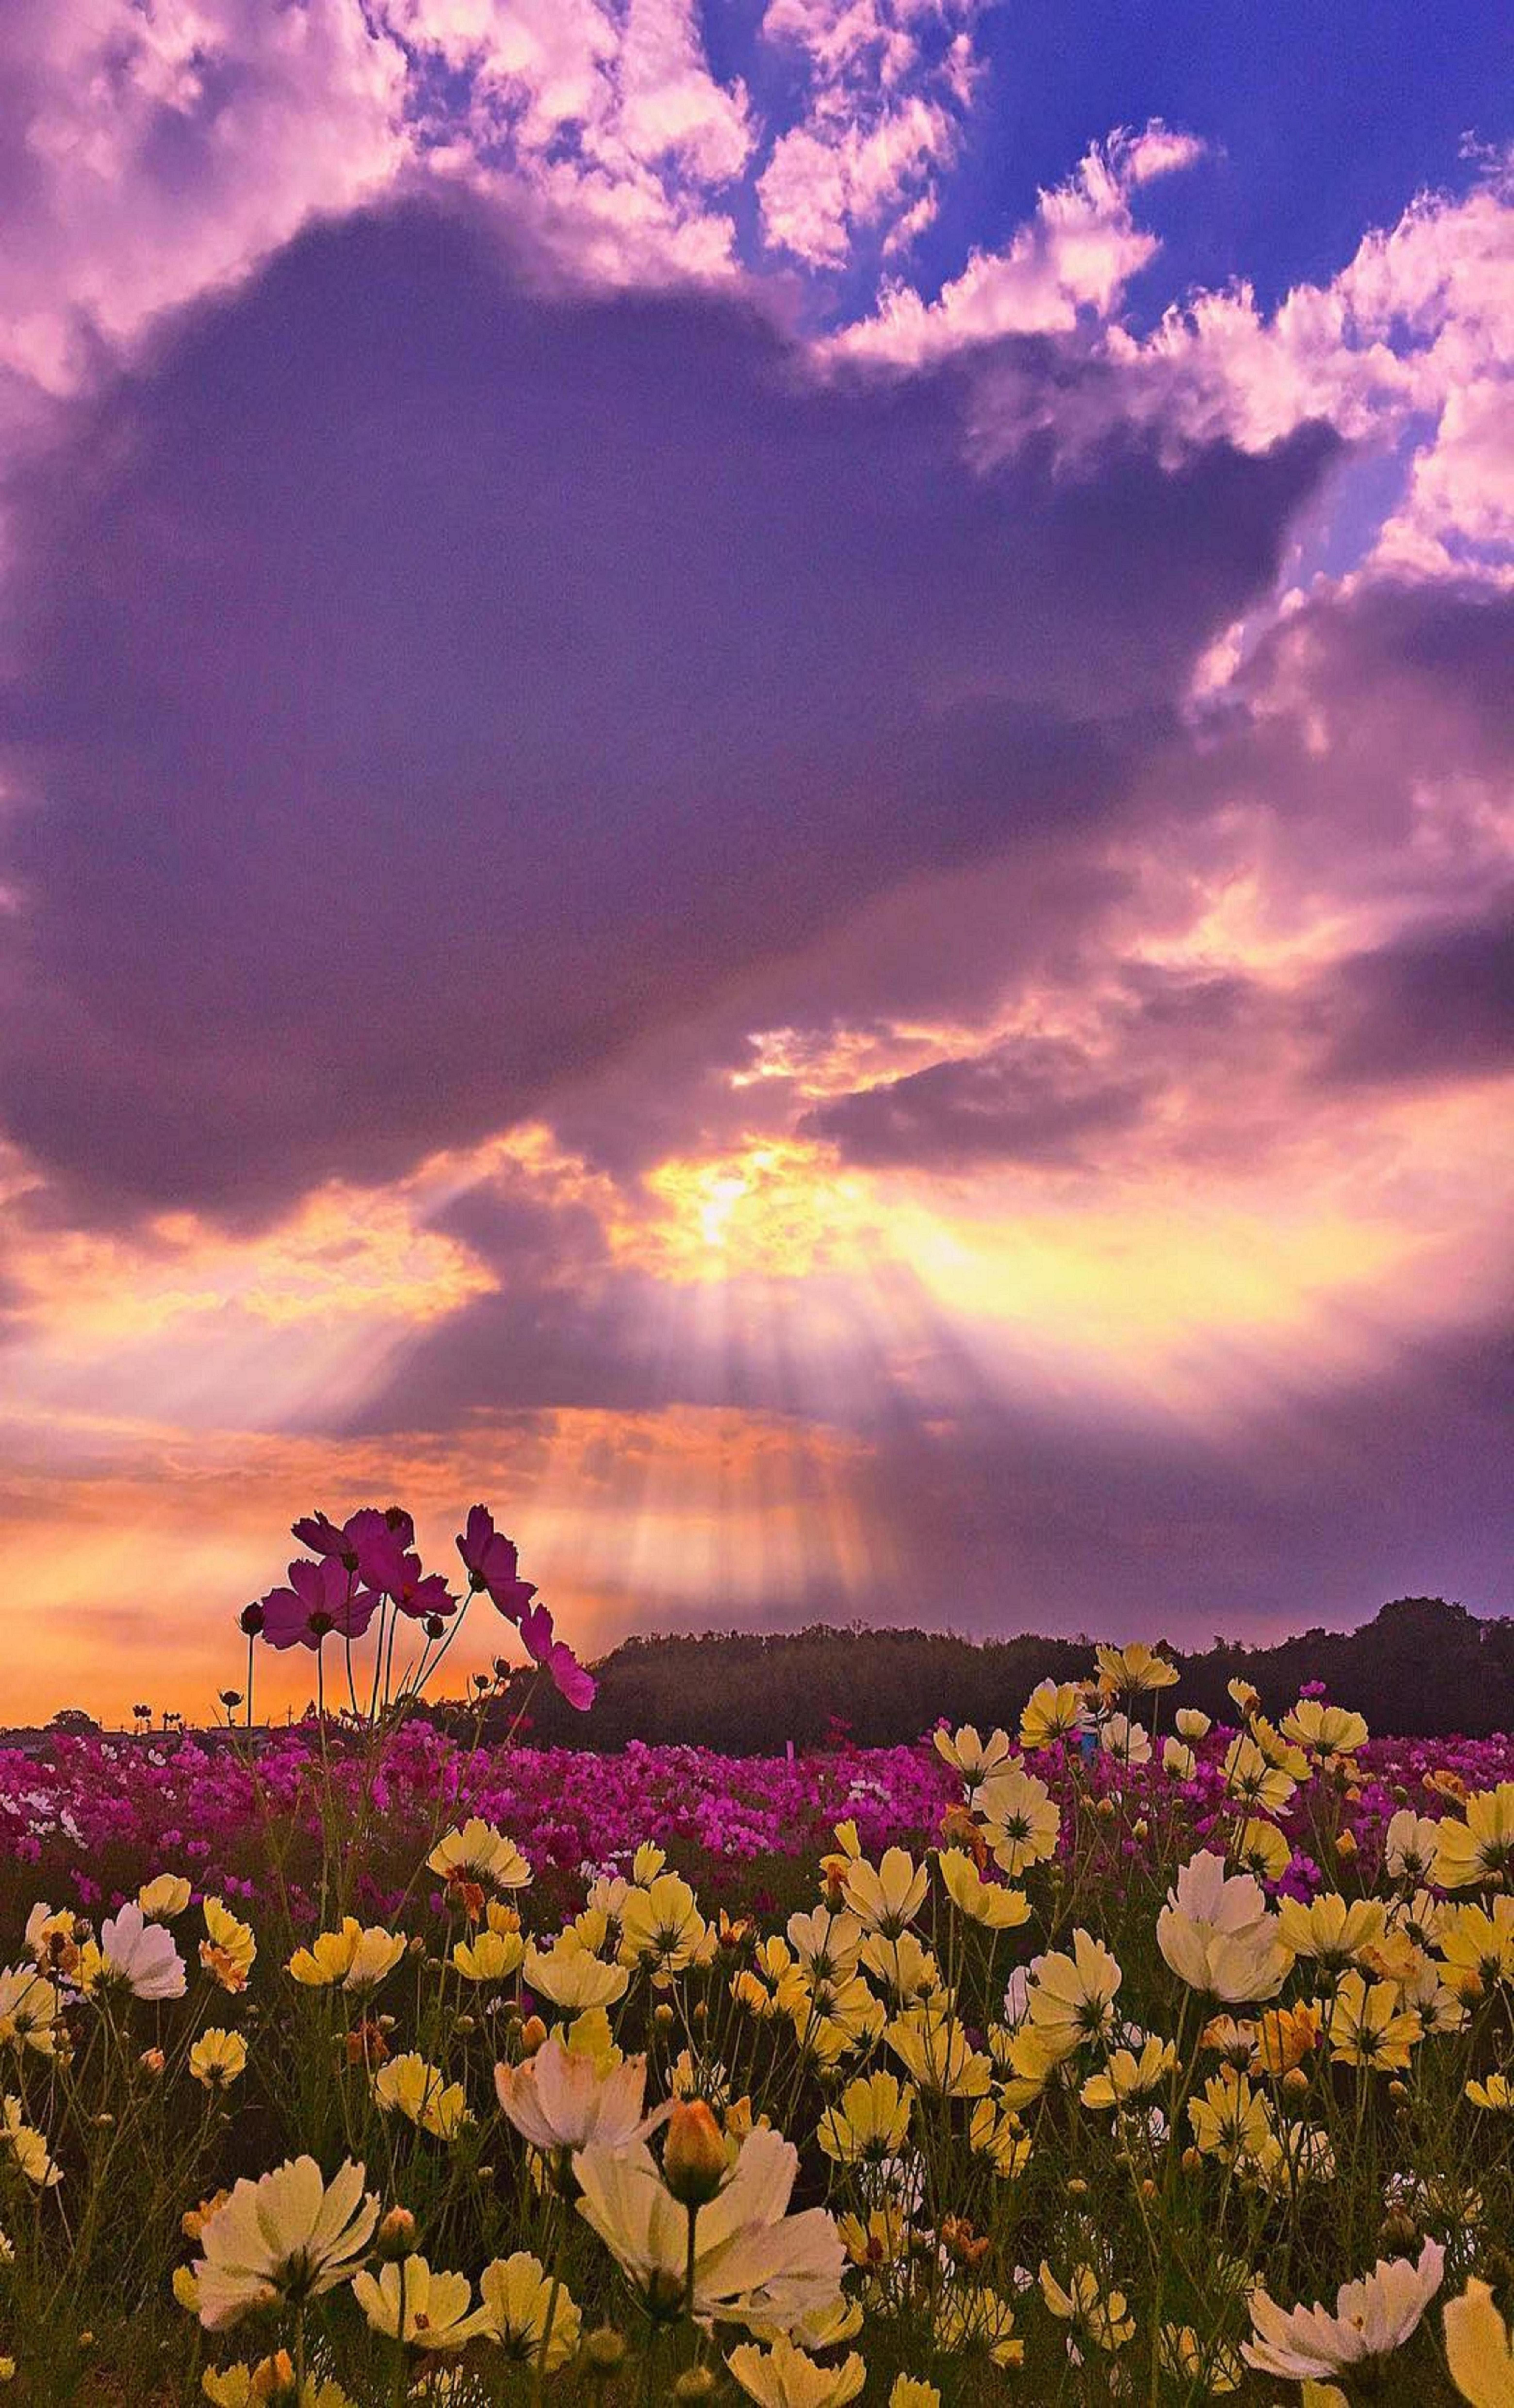 Pin By Maureen Pline On Sunset Beautiful Nature Nature Pictures Scenery Pictures